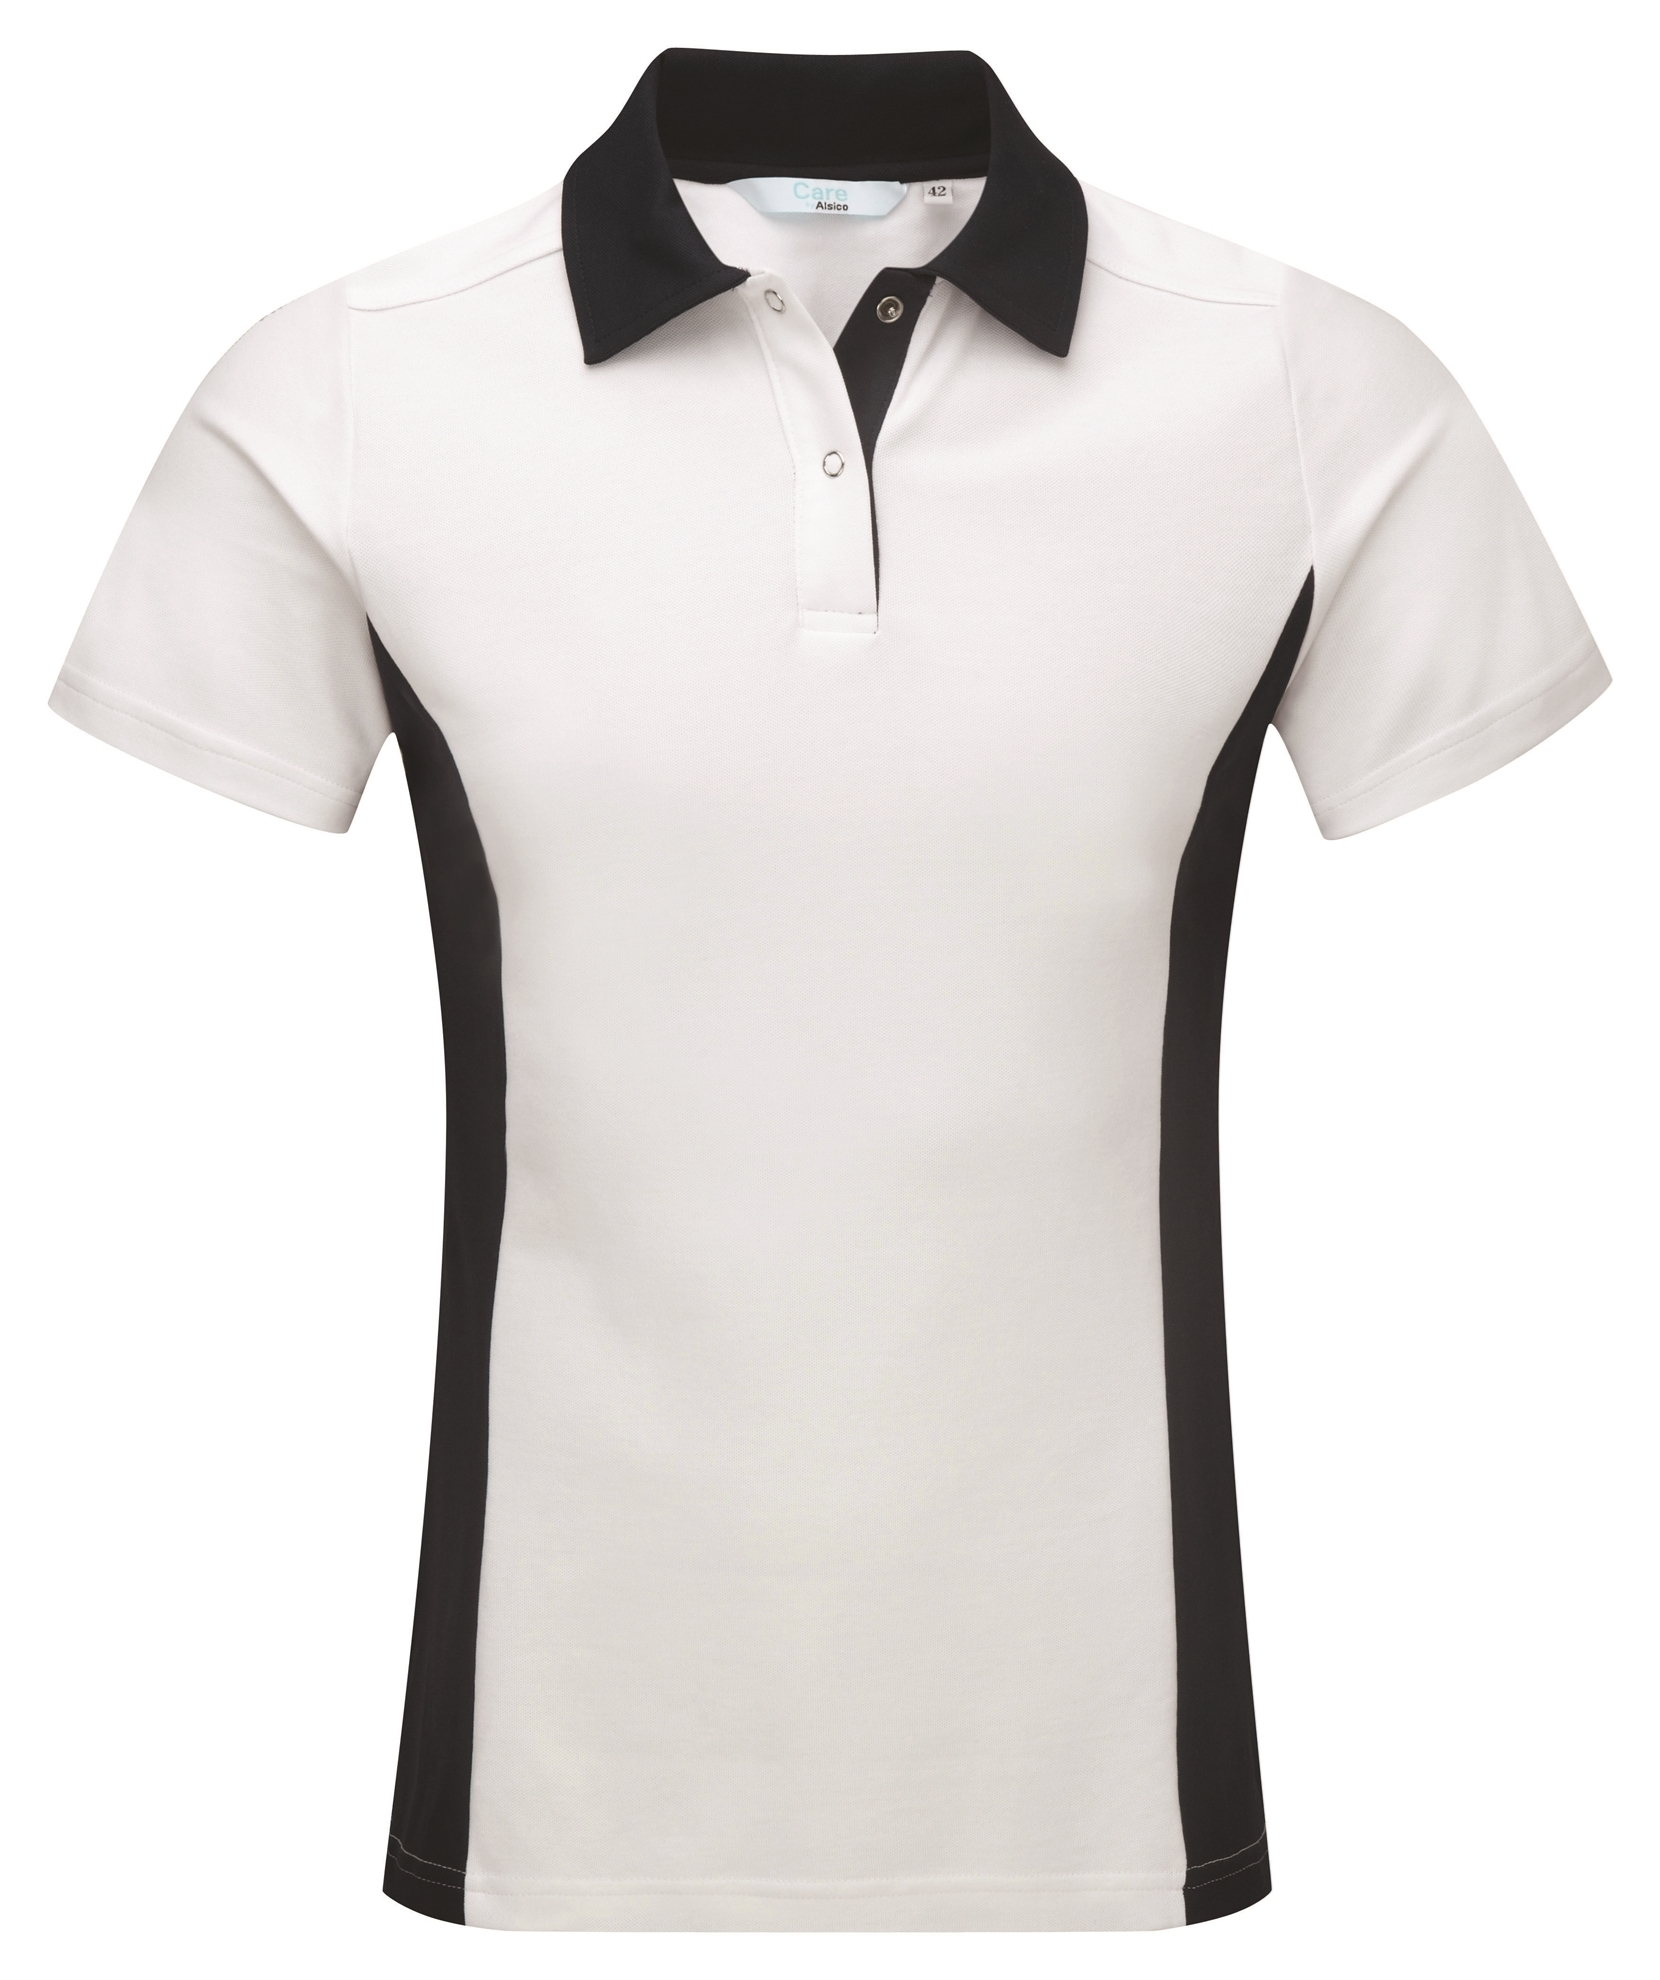 Picture of Contrast Polo Shirt - White/Navy